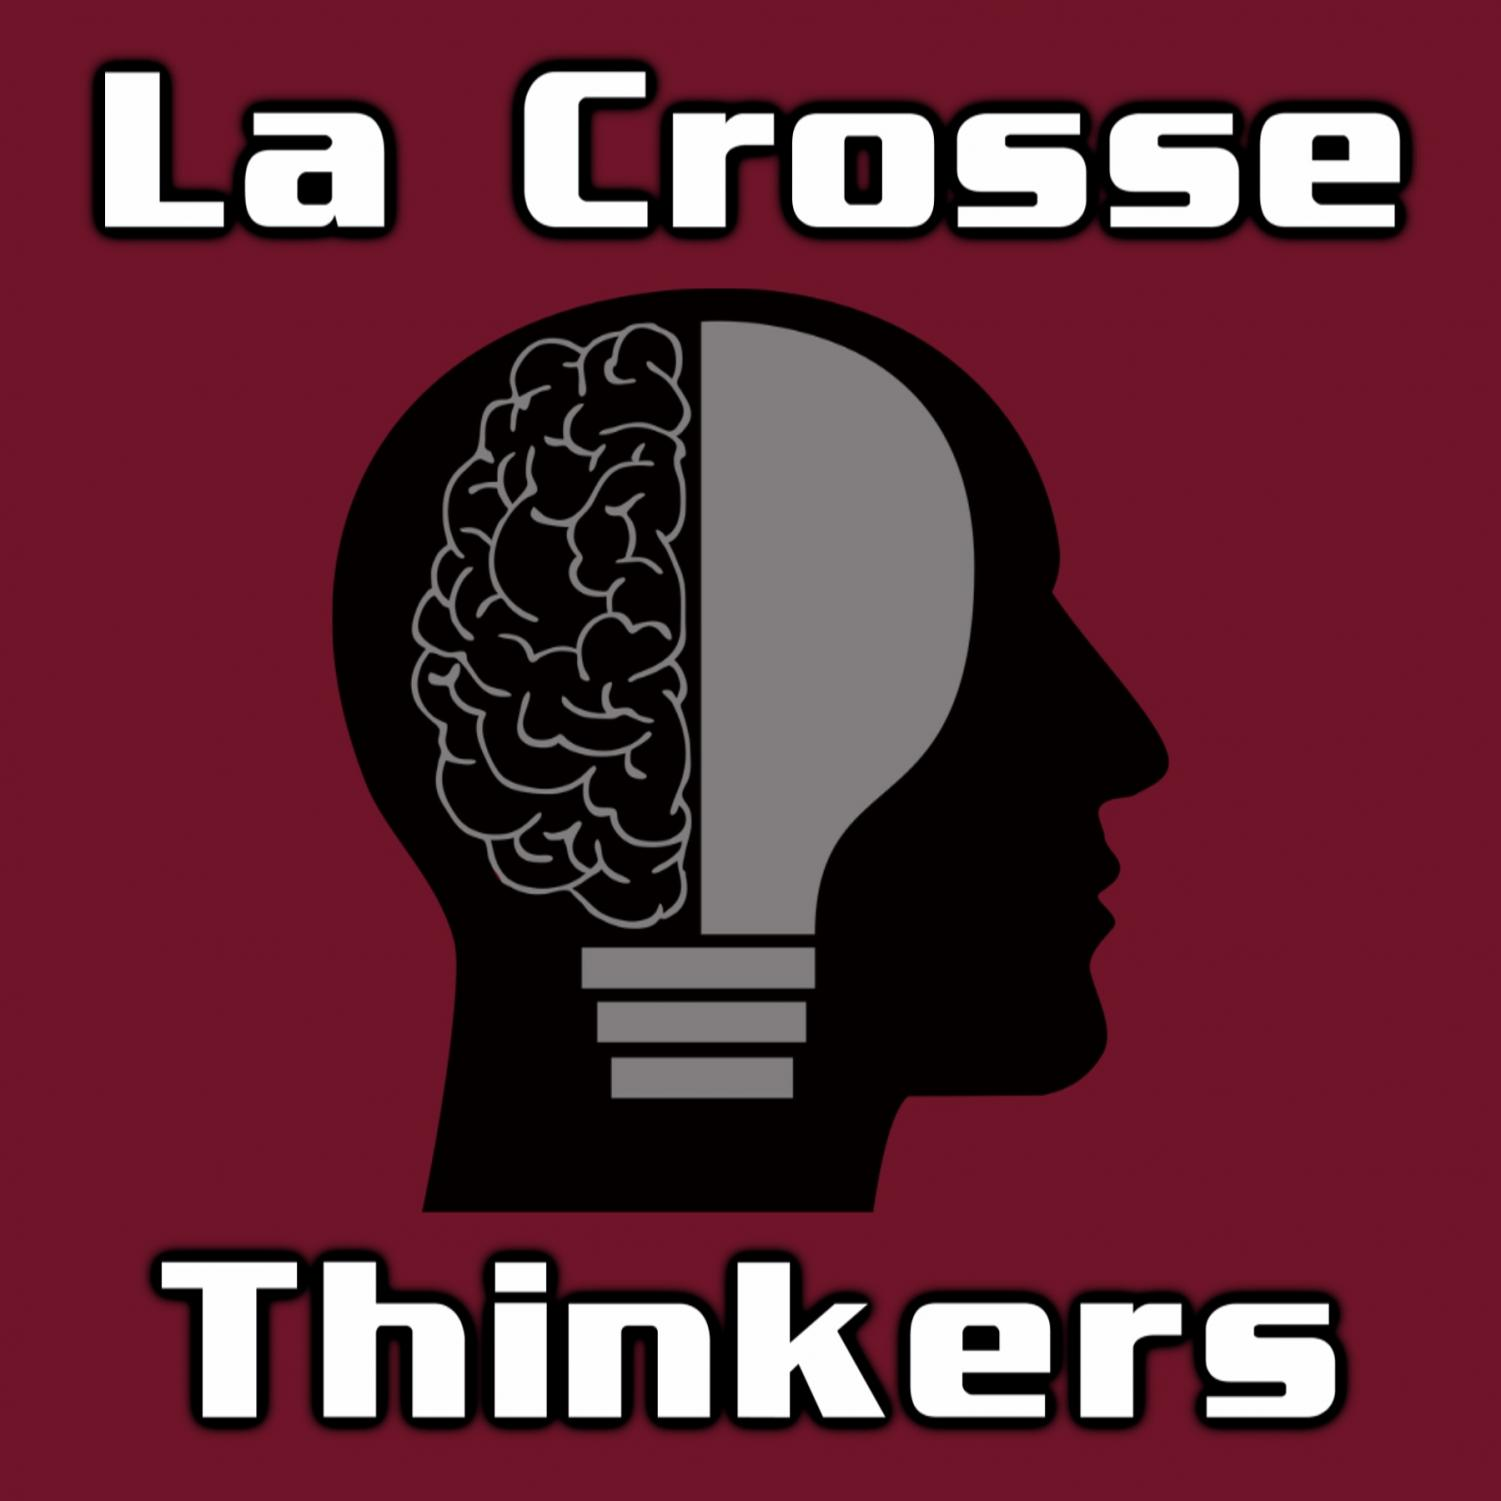 La Crosse Thinkers podcast logo. Photo retrieved from Song Chen.